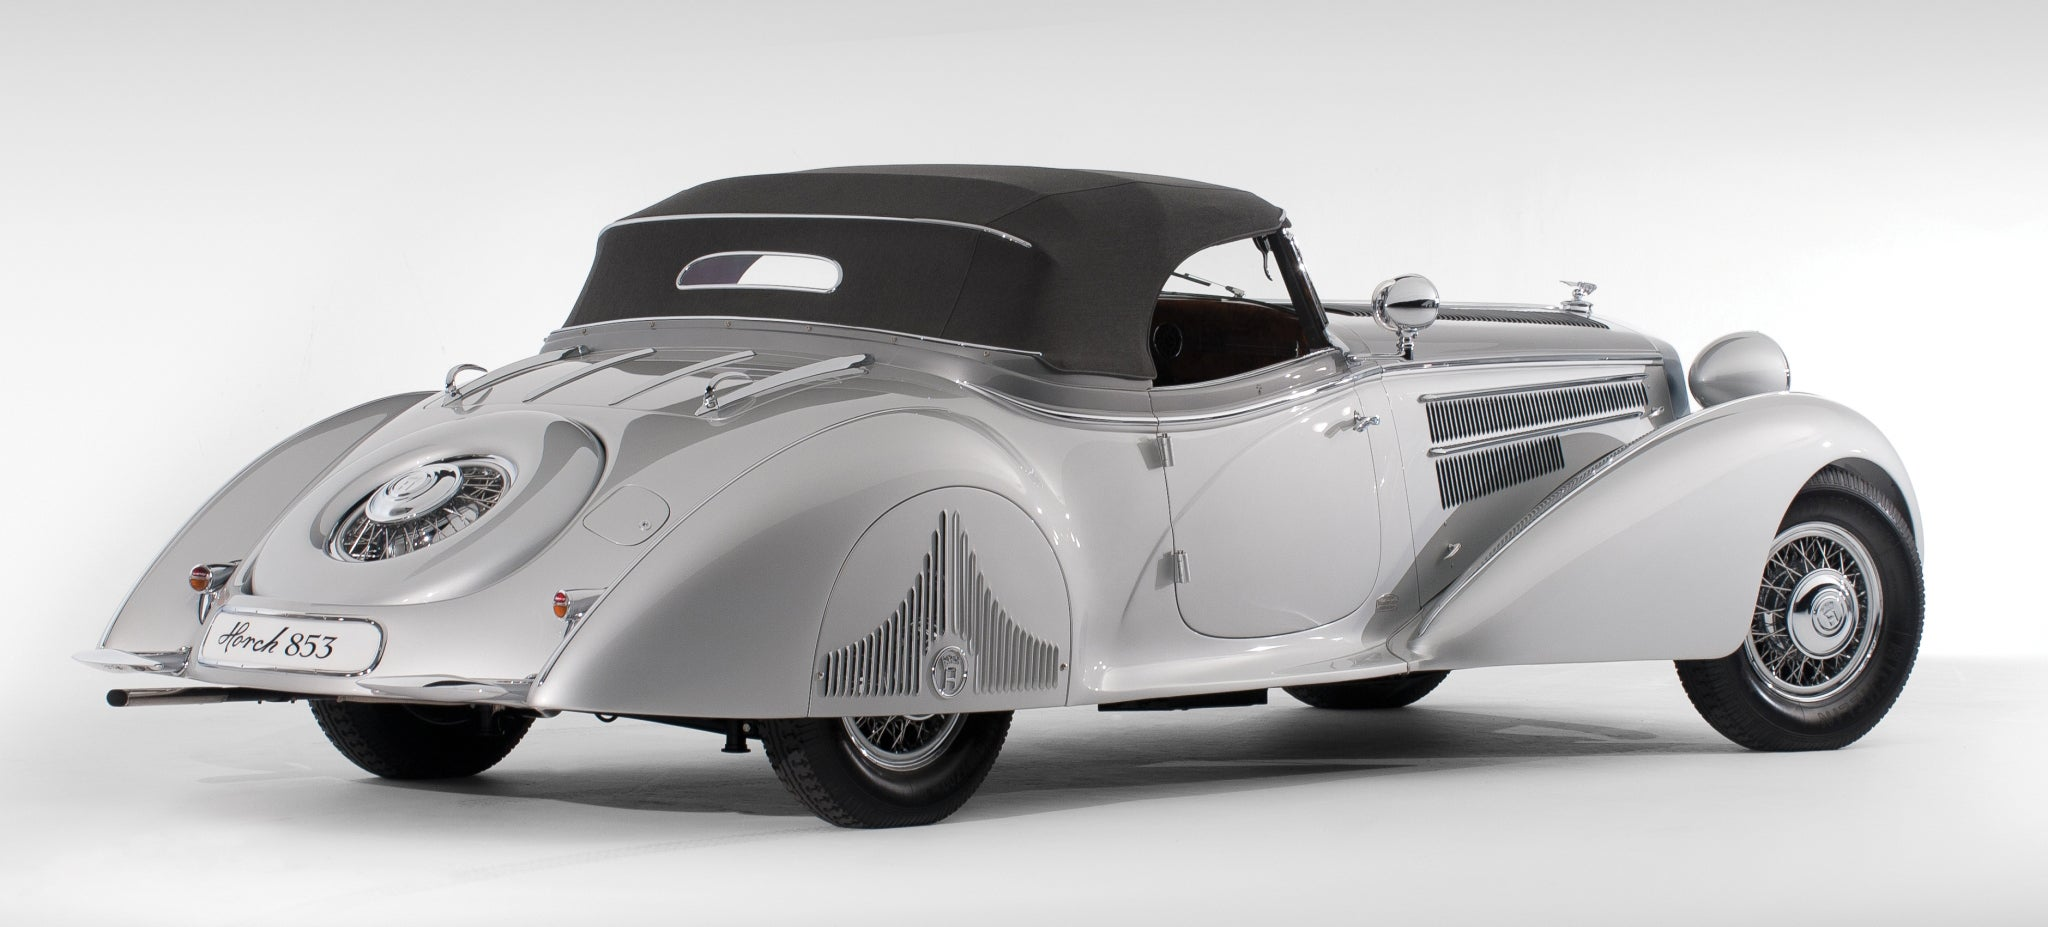 Where Can We Autocross A Horch?